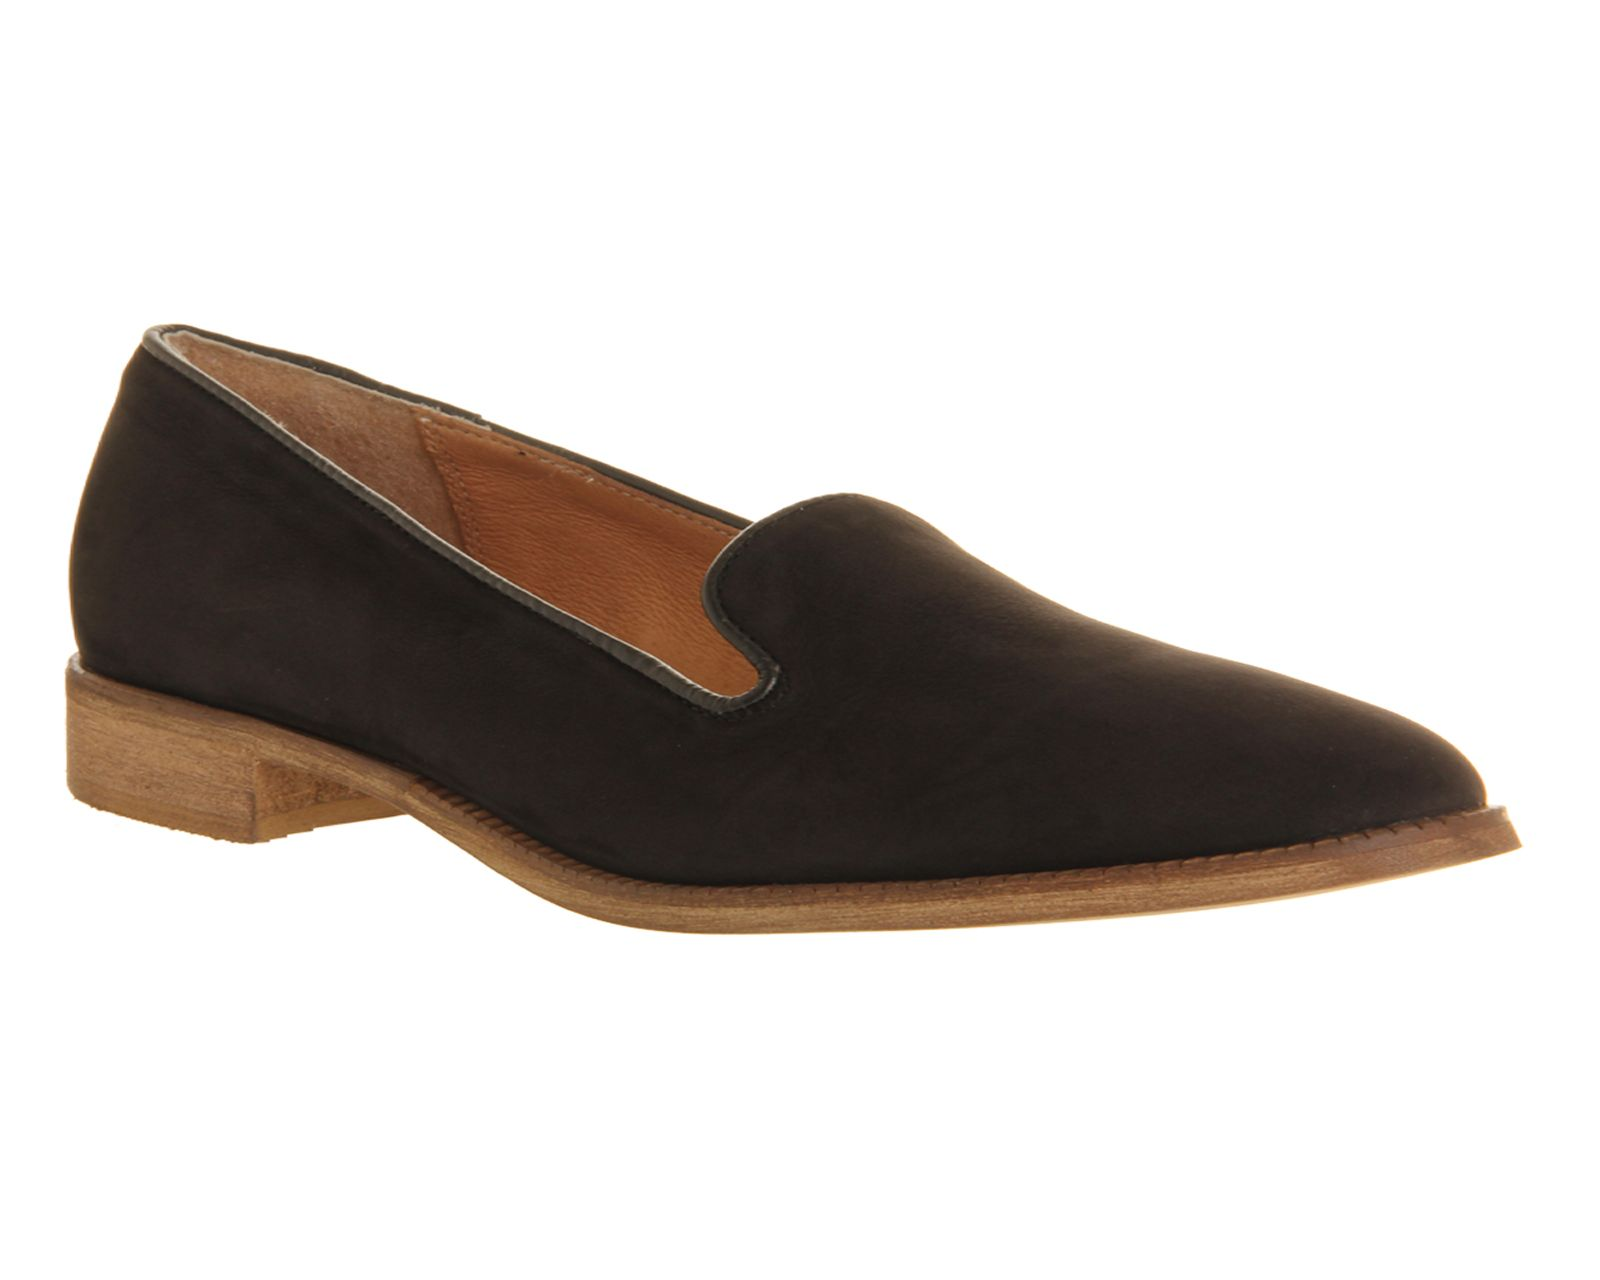 Verona loafer slip on flat loafers